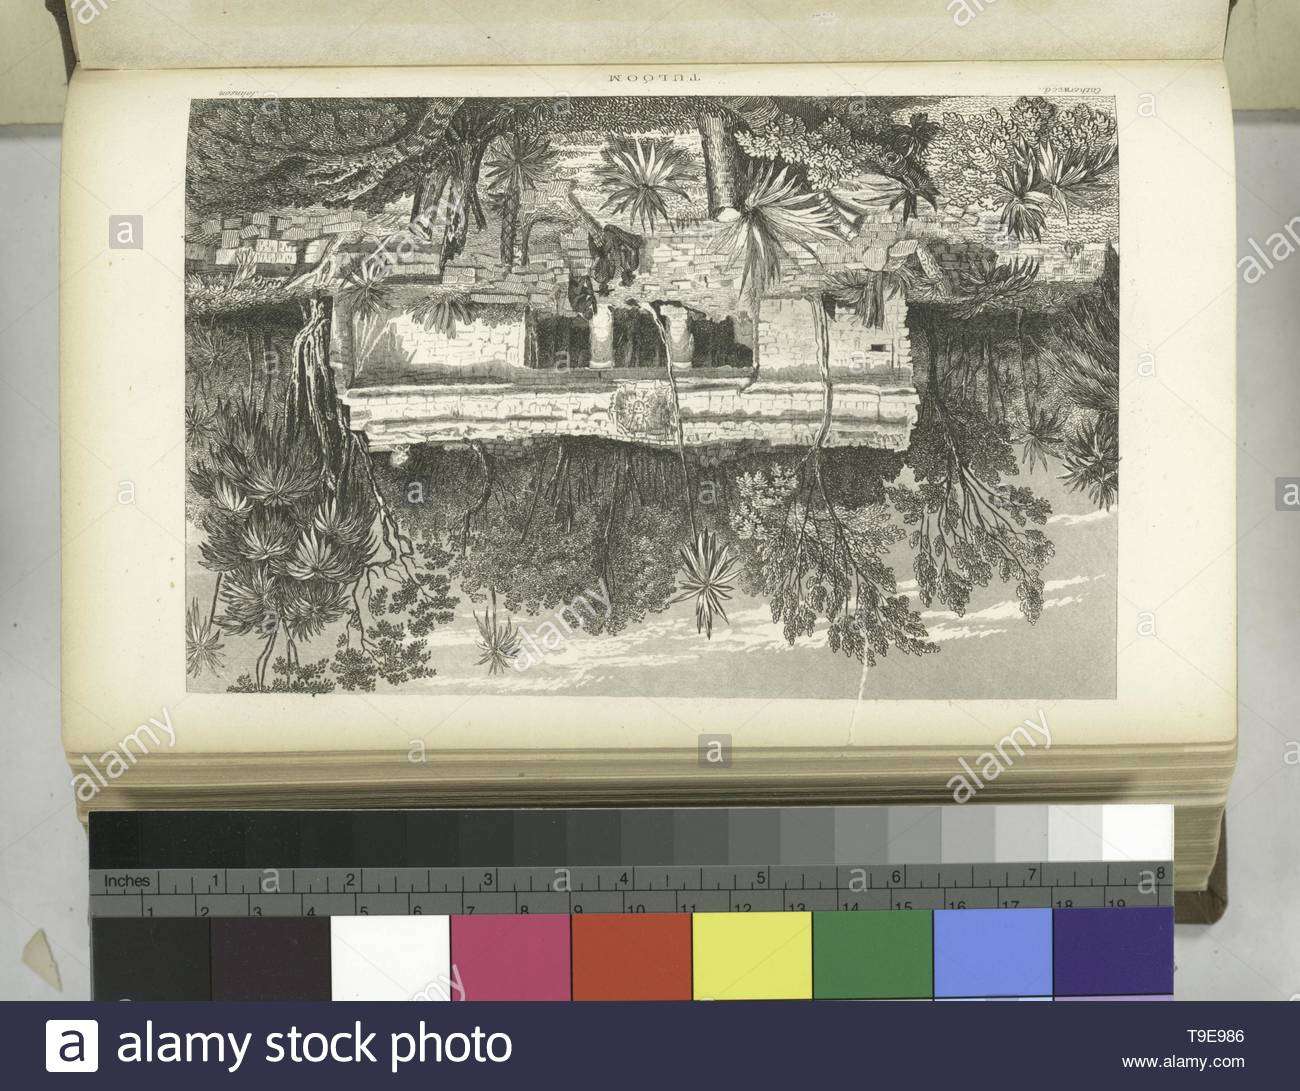 Stephens,JohnLloyd,1805-1852-Tuloom   [Rear view of the abandoned building] - Stock Image